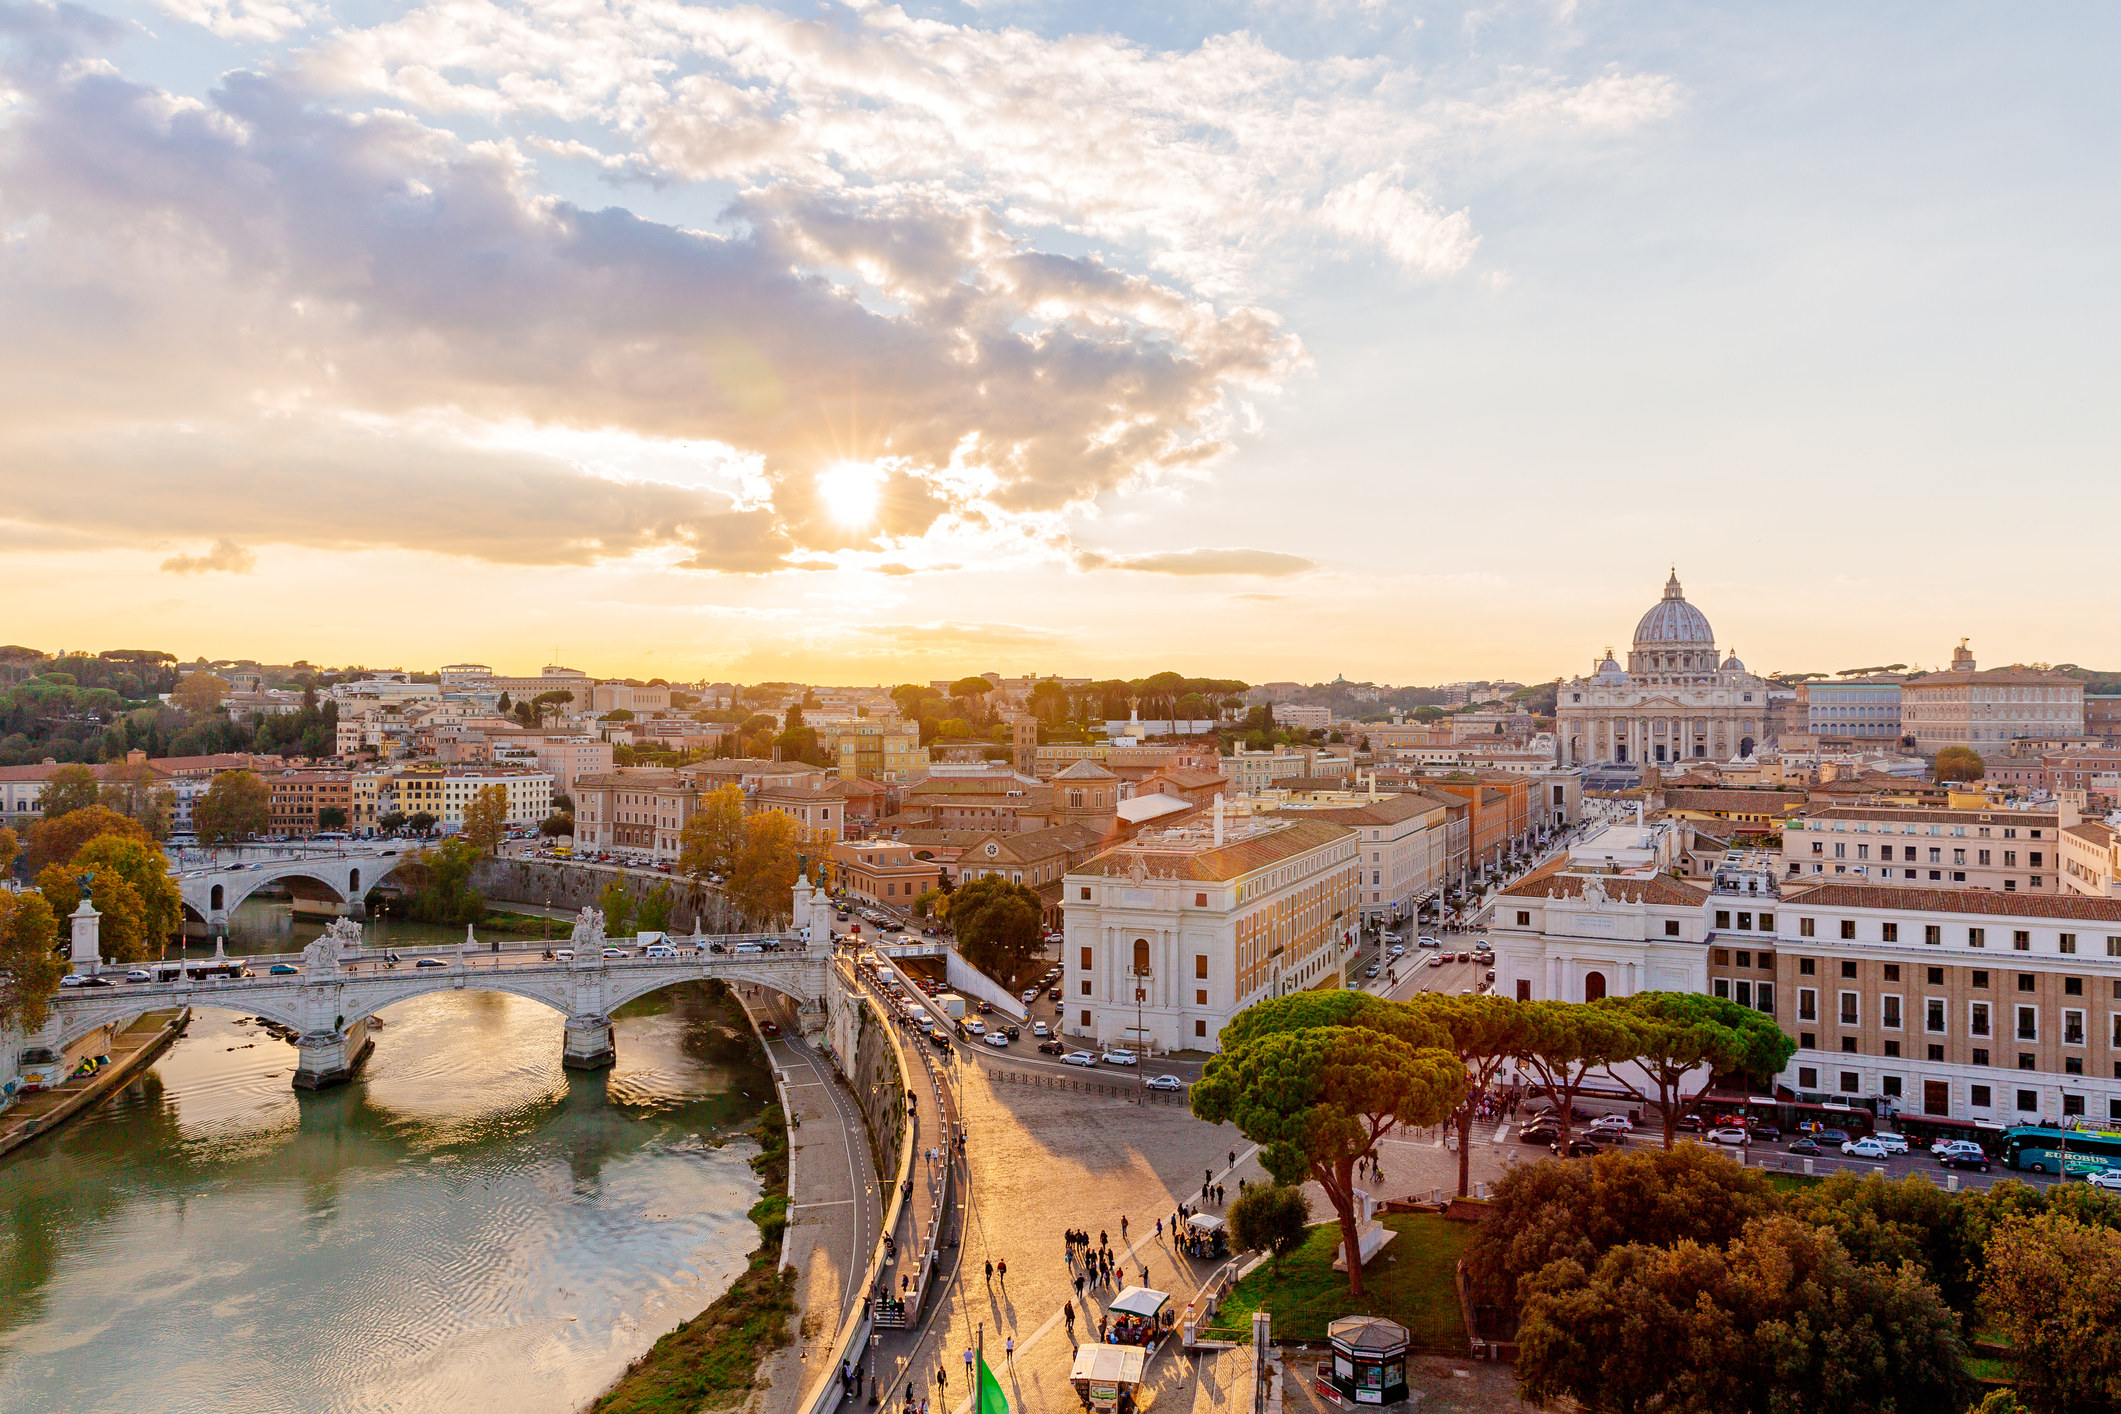 A landscape of Rome and the Tiber River.